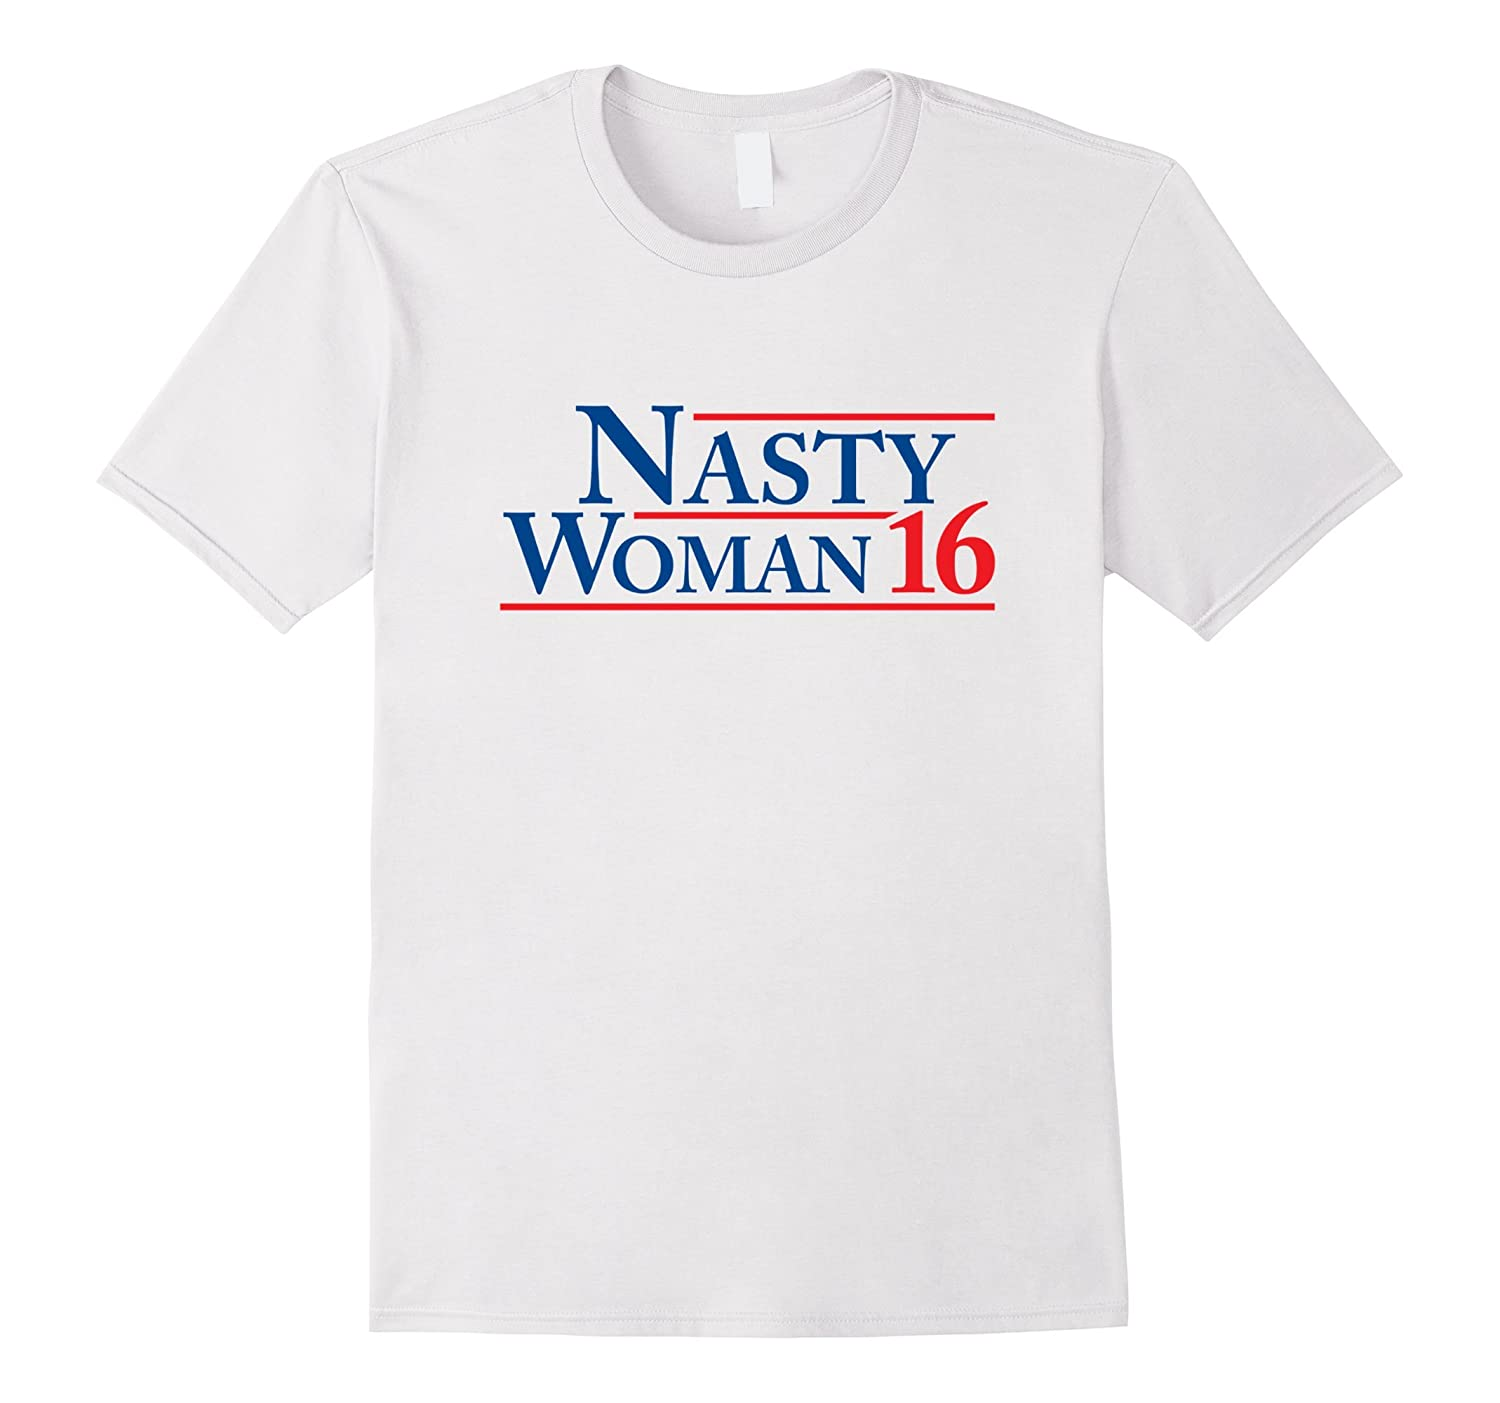 Nasty Woman T-shirt - Hillary For President 16